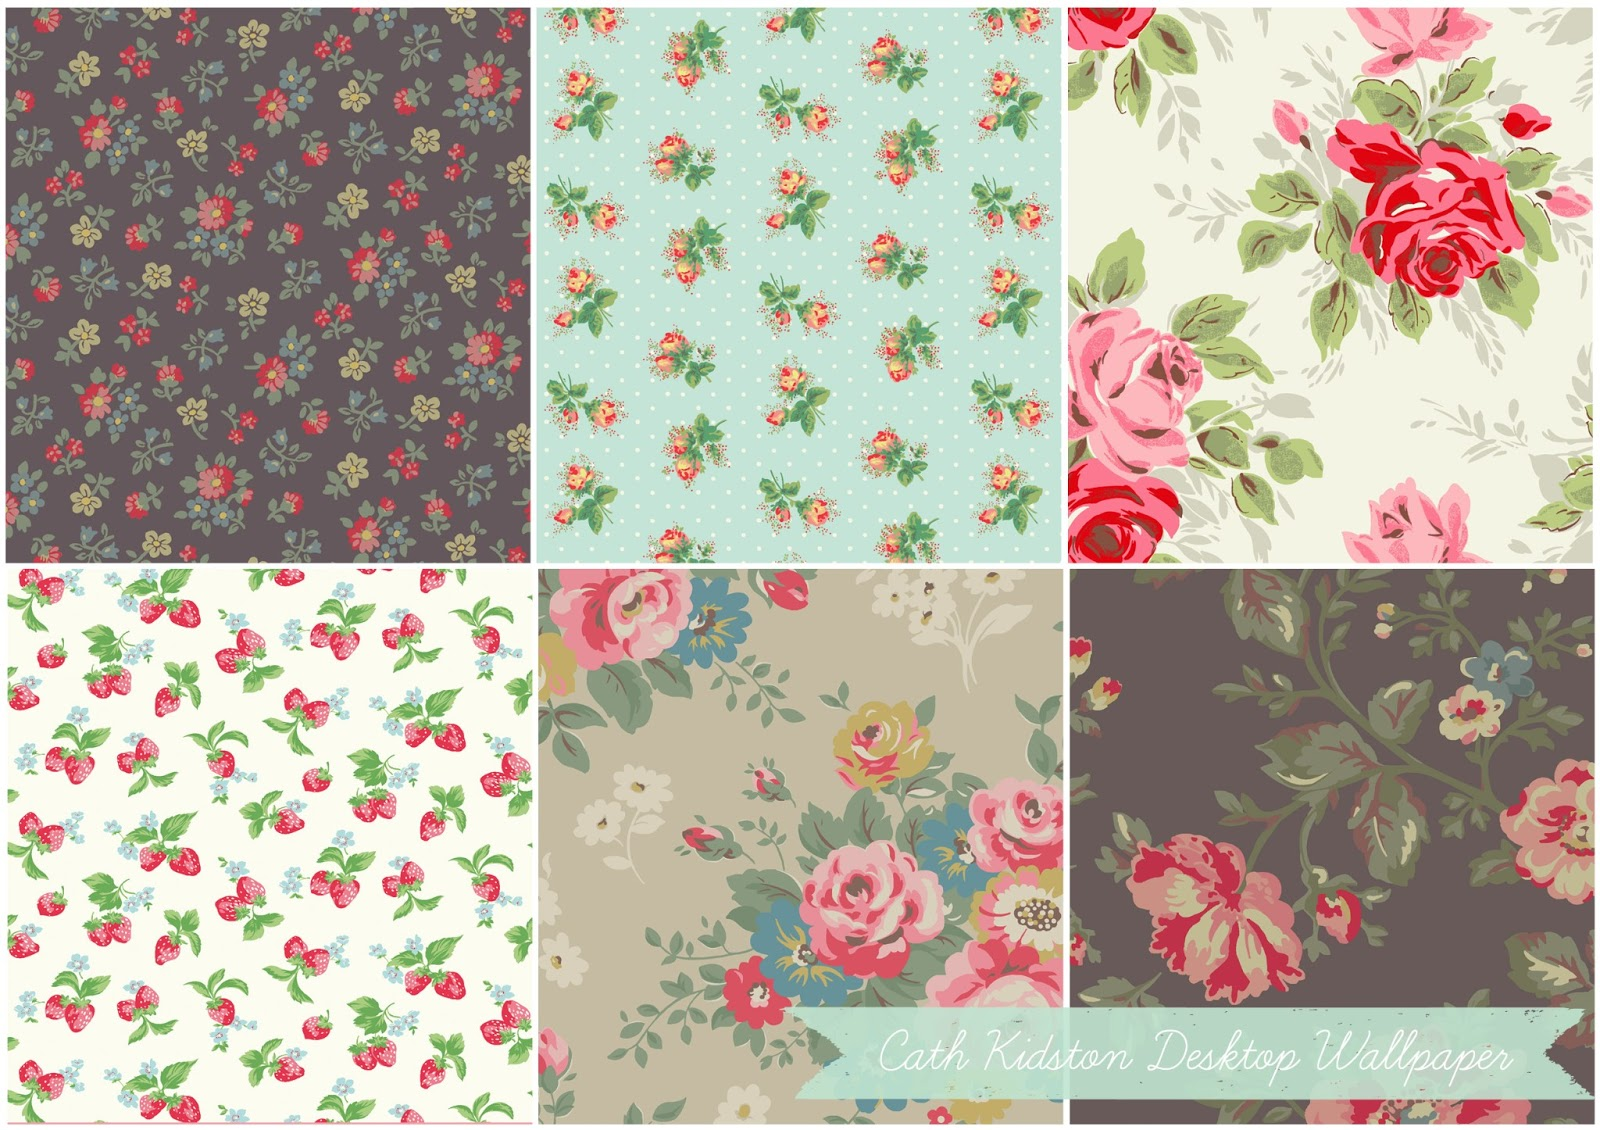 Cath Kidston has some beautiful desktop wallpaper available for 1600x1130